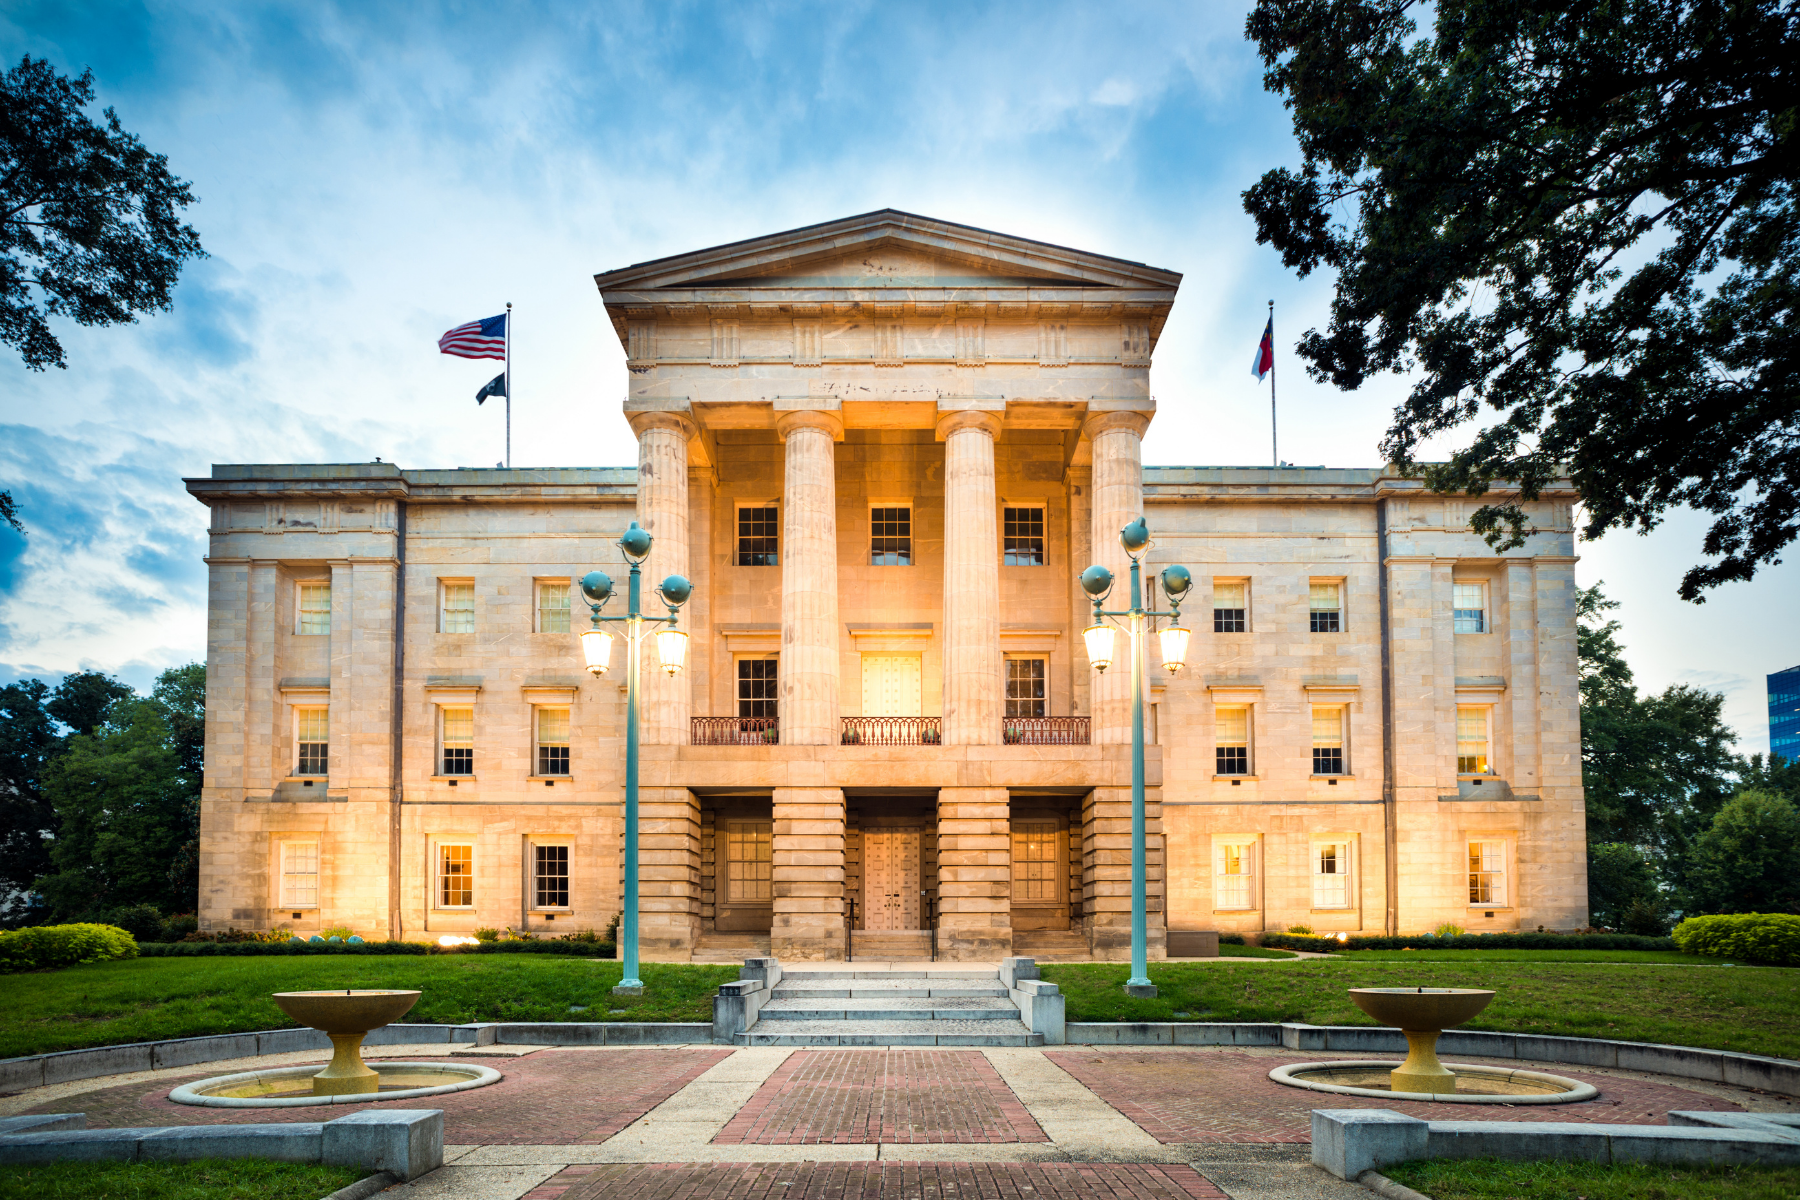 North Carolina State House